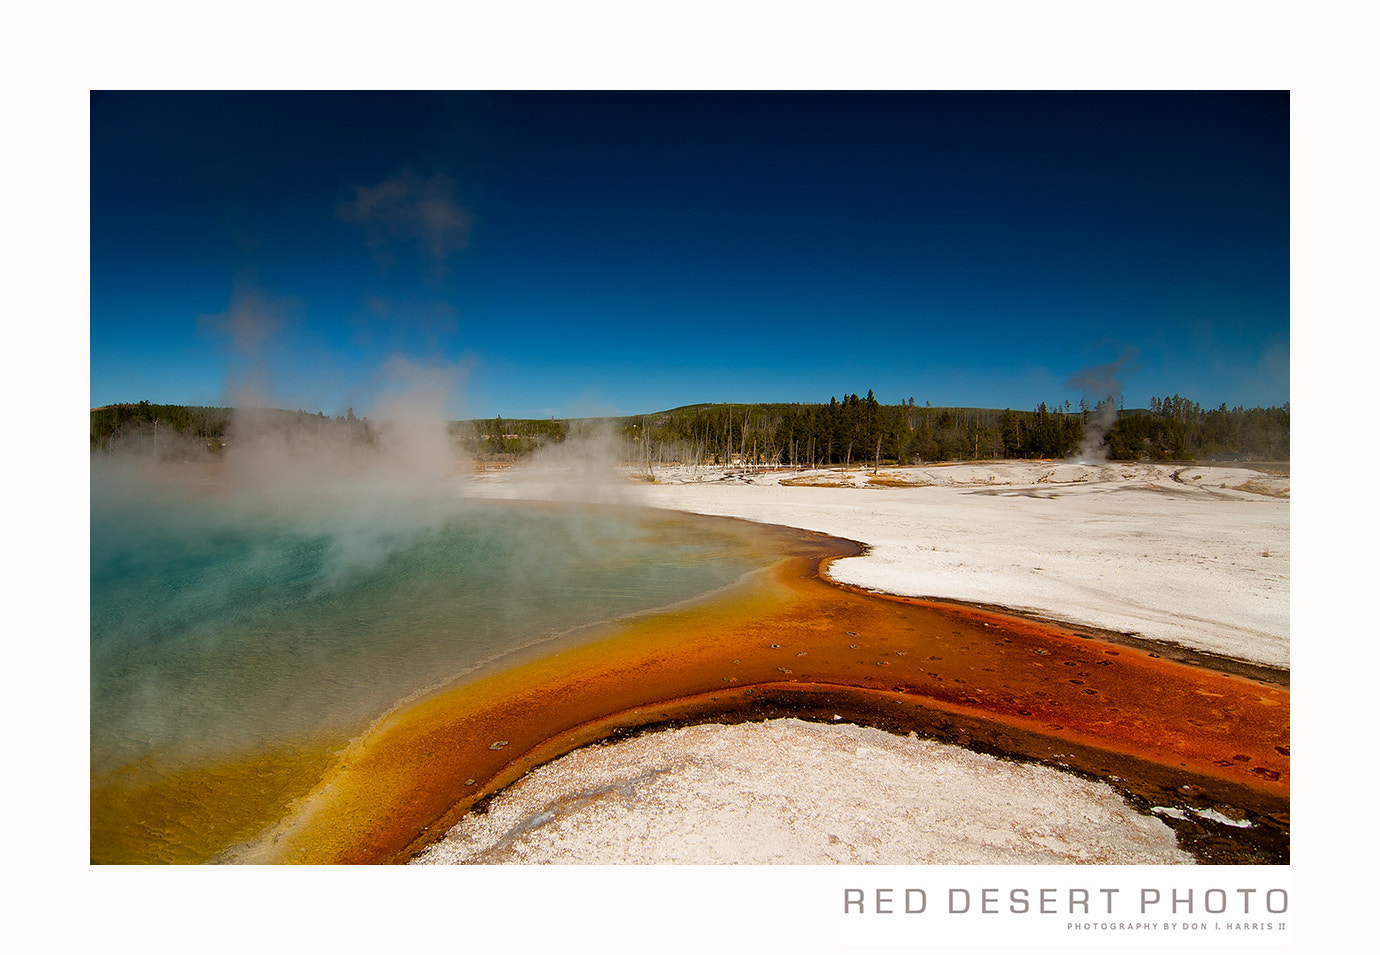 Photograph Yellowstone by Red Desert Photo on 500px